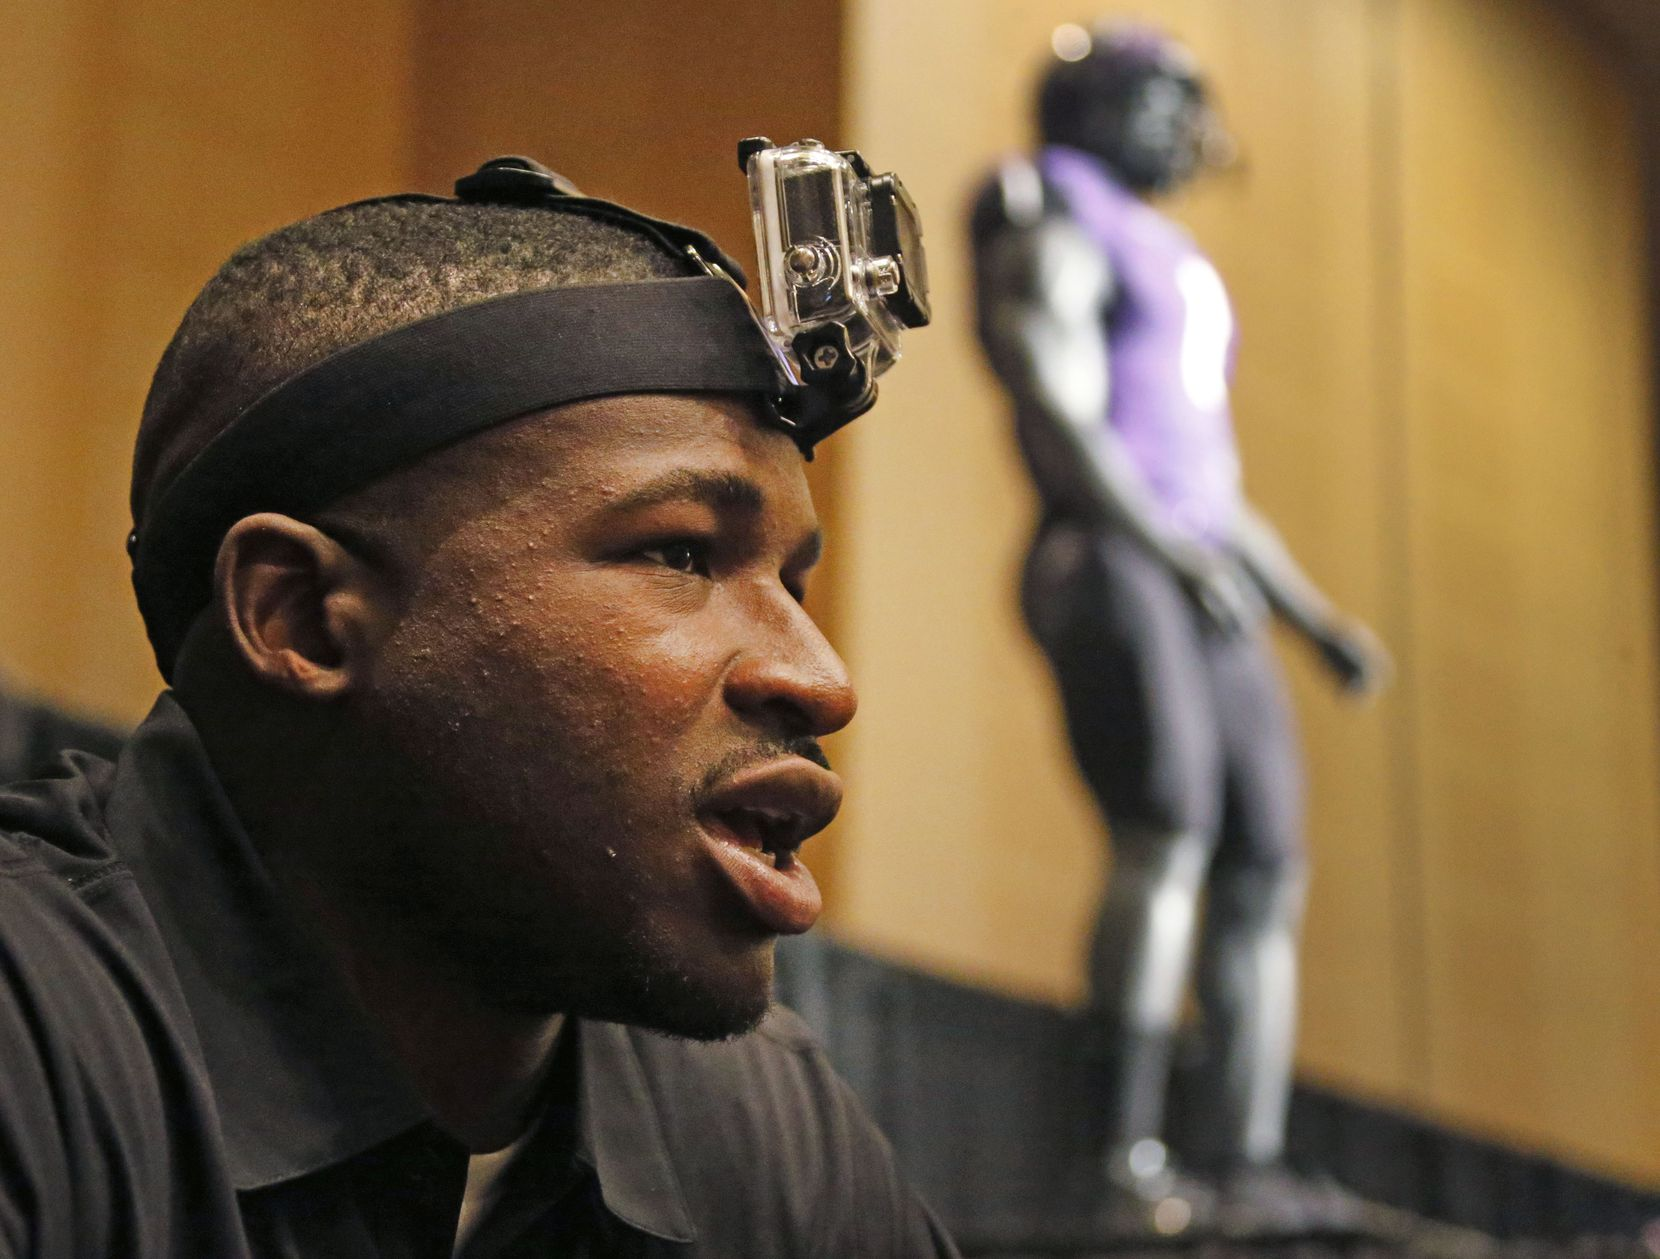 TCU's David Porter wore a GoPro camera on his head in 2014 to record video as he was interviewed during the Big 12 Conference Football Media Days at the Omni Hotel in downtown Dallas.